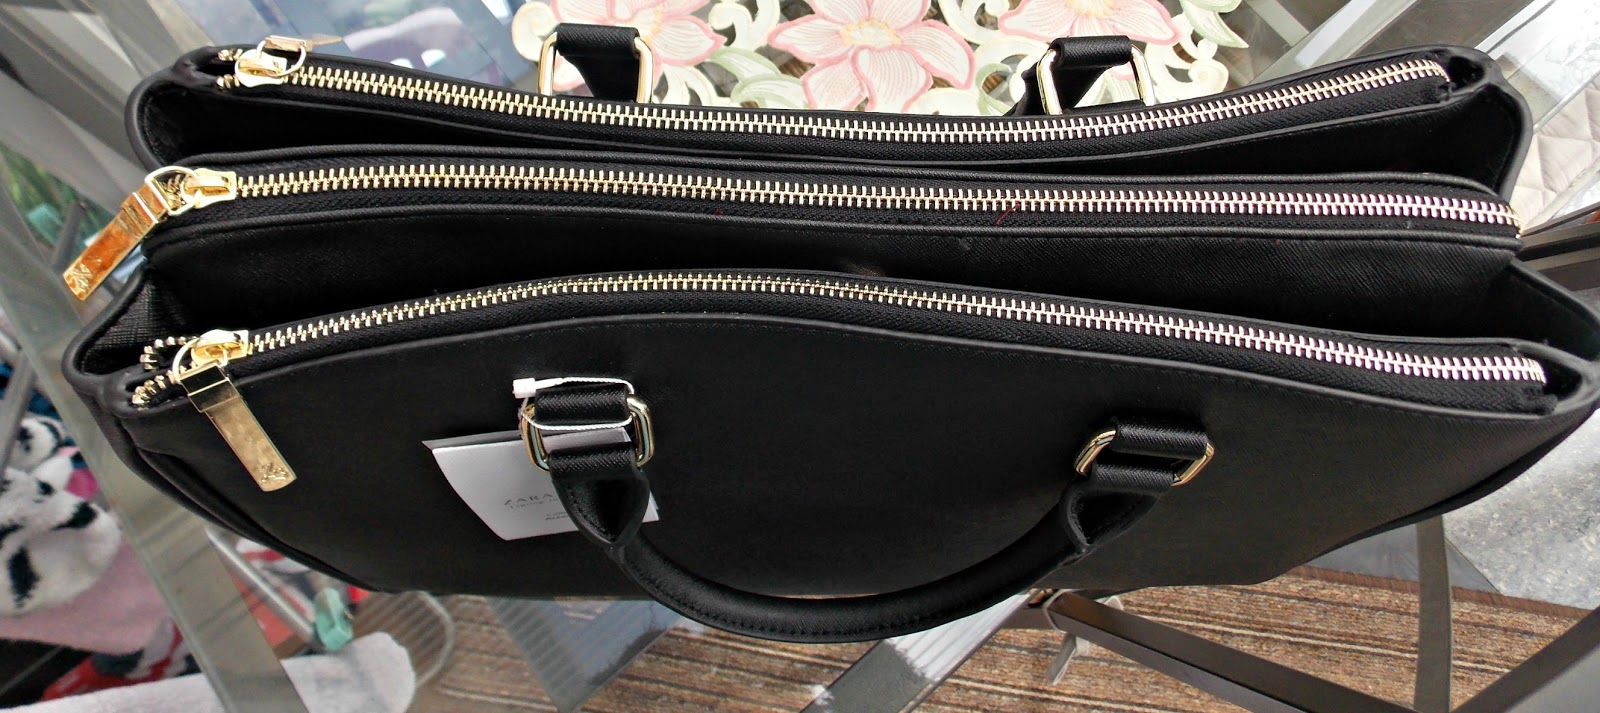 93c462605c1 All three zipper compartments are bucket compartments without any pockets.